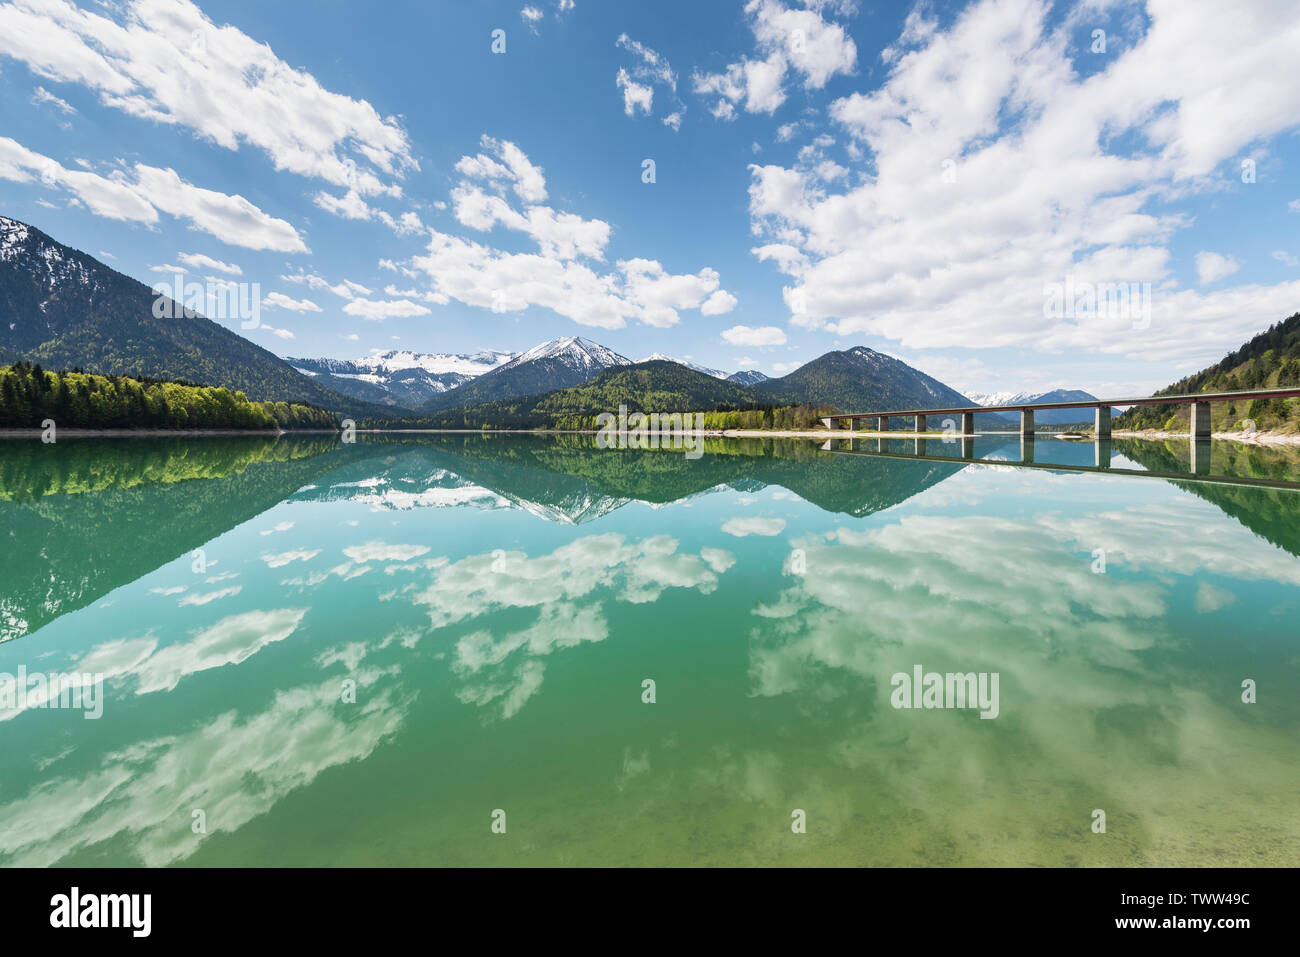 Blue sky with white clouds over the Sylvenstein reservoir in front of snowy mountains of the Karwendel with reflections in turquoise water, Bavaria - Stock Image